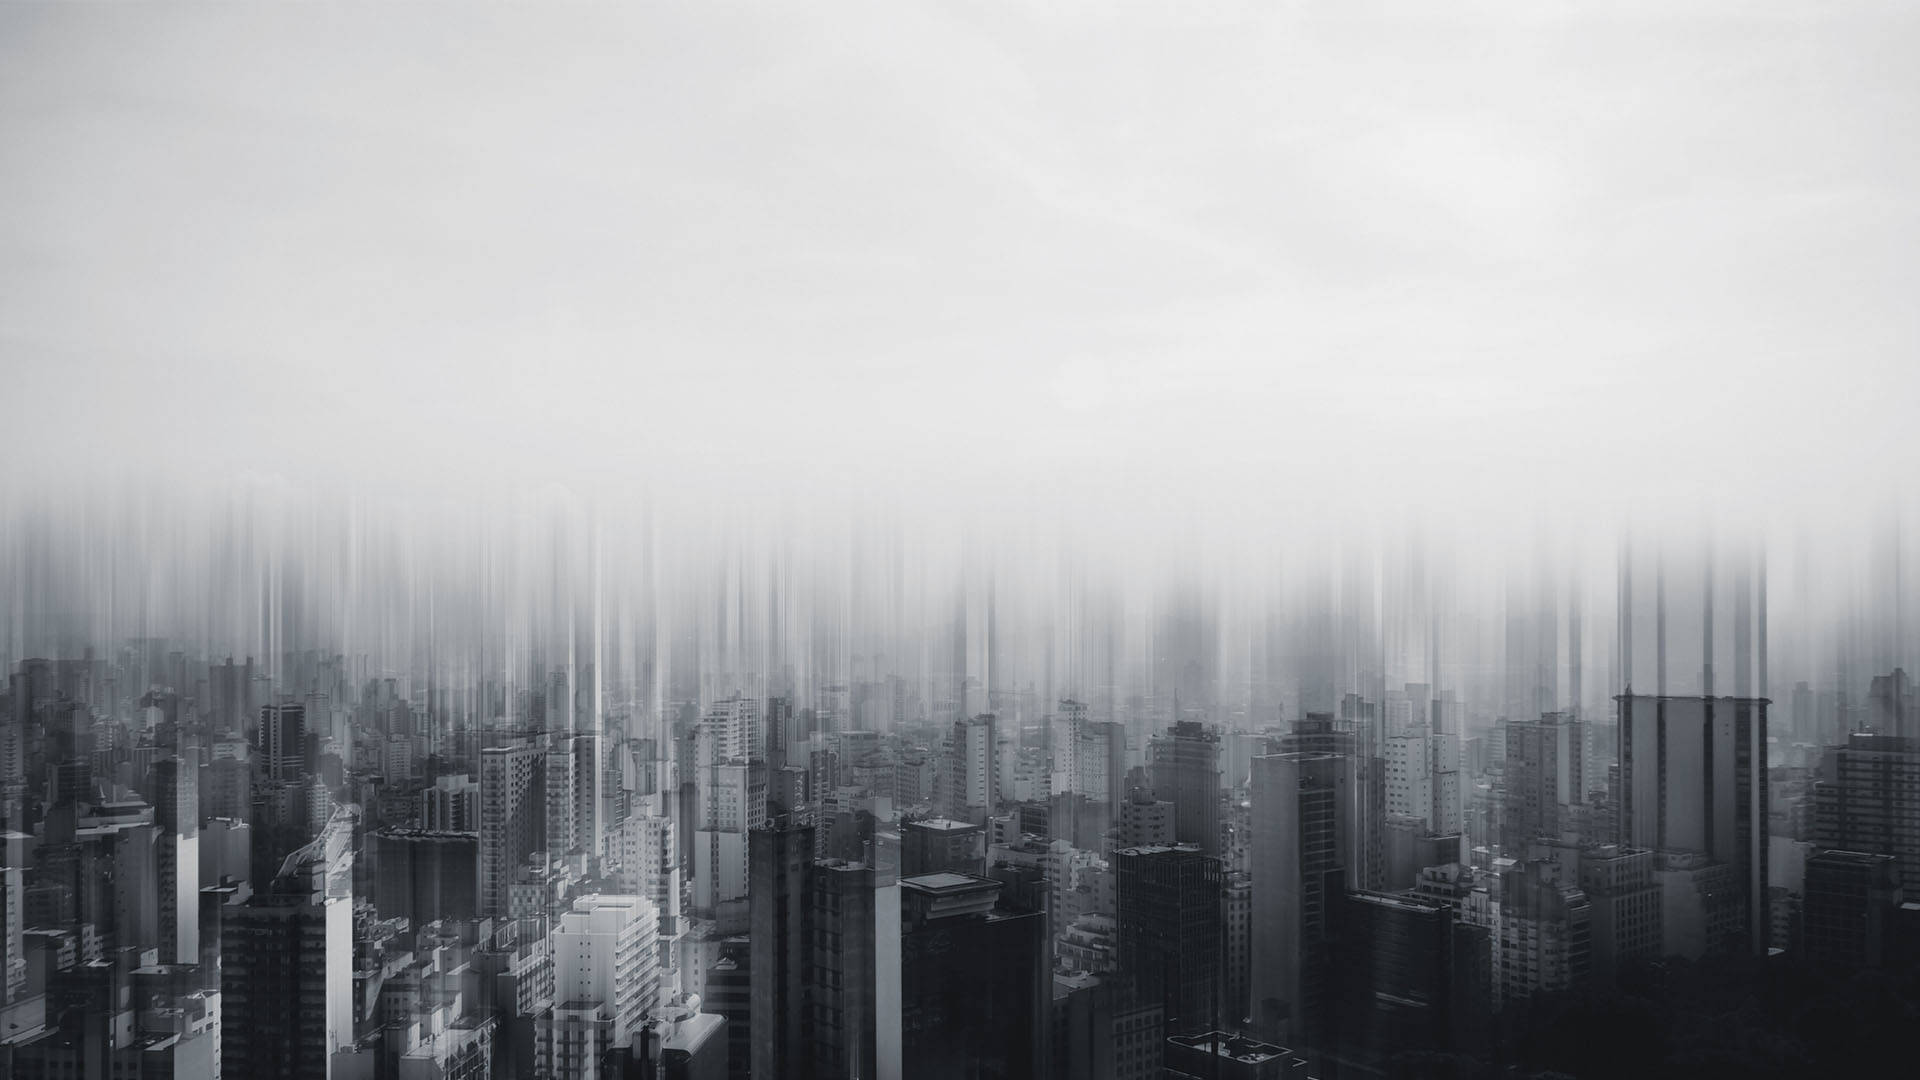 Black and white image of city skyline